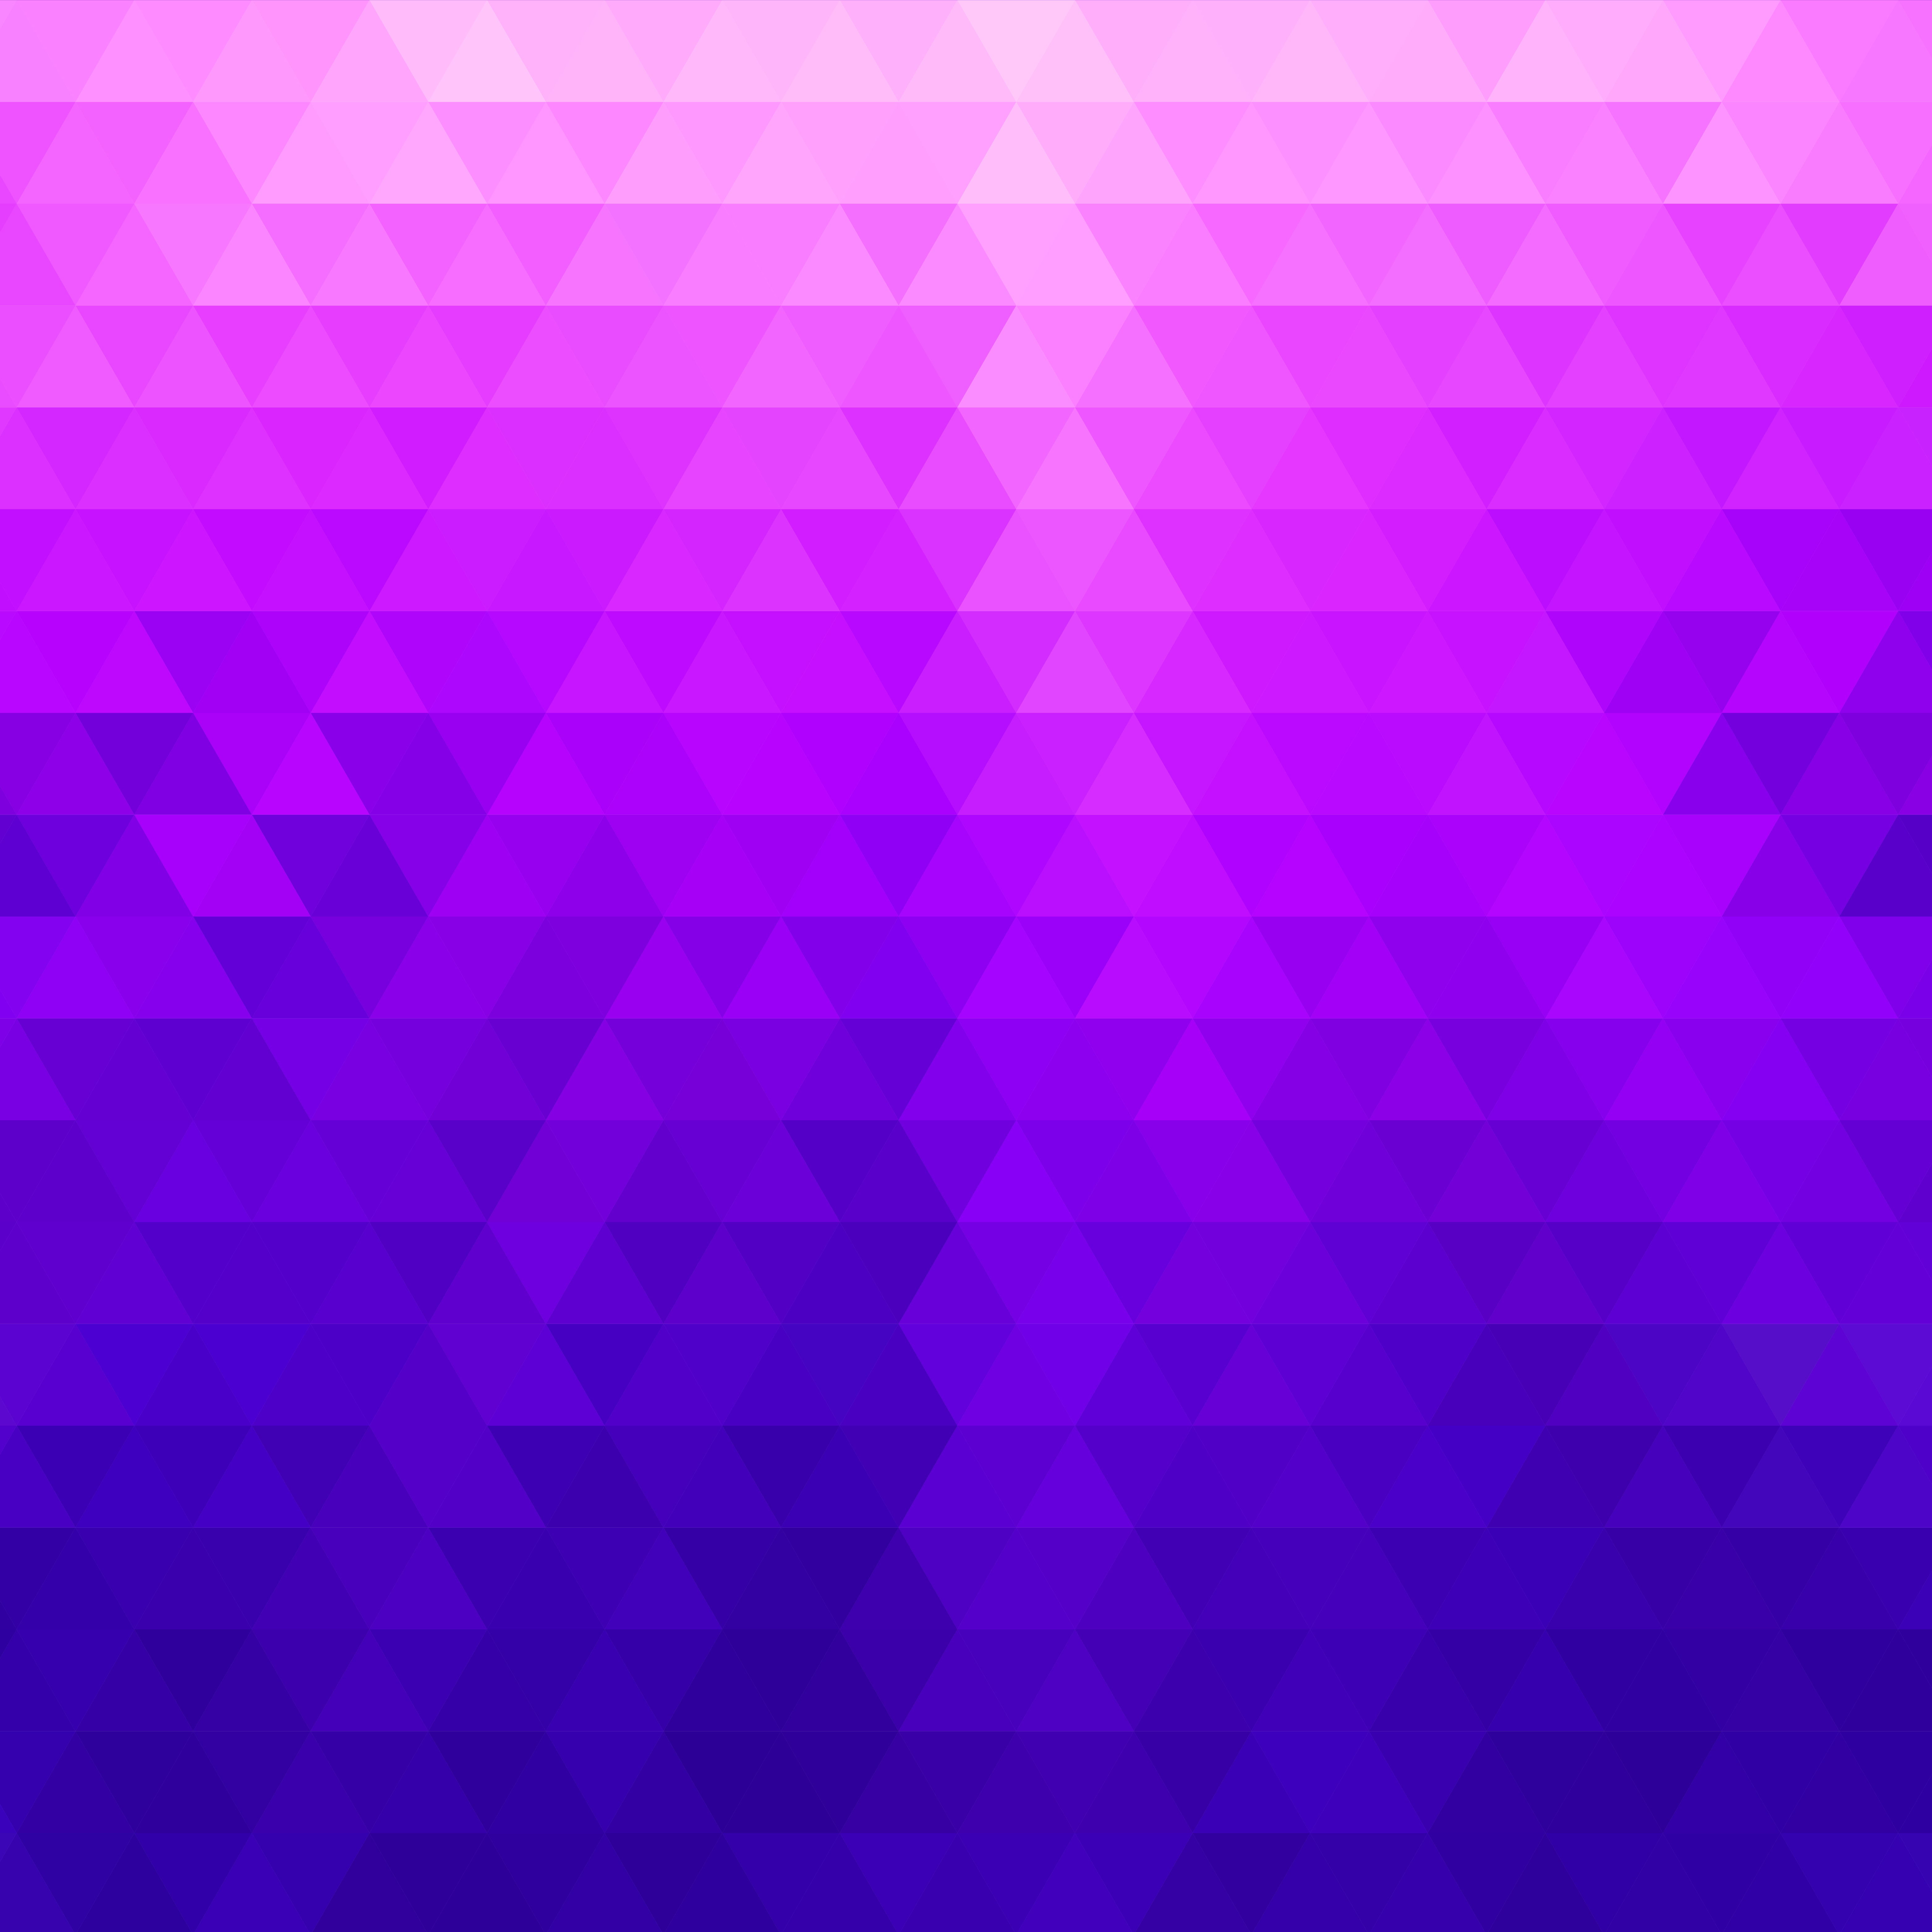 Purple Pink Background Png & Free Purple Pink Background.png Transparent  Images #62107 - PNGio